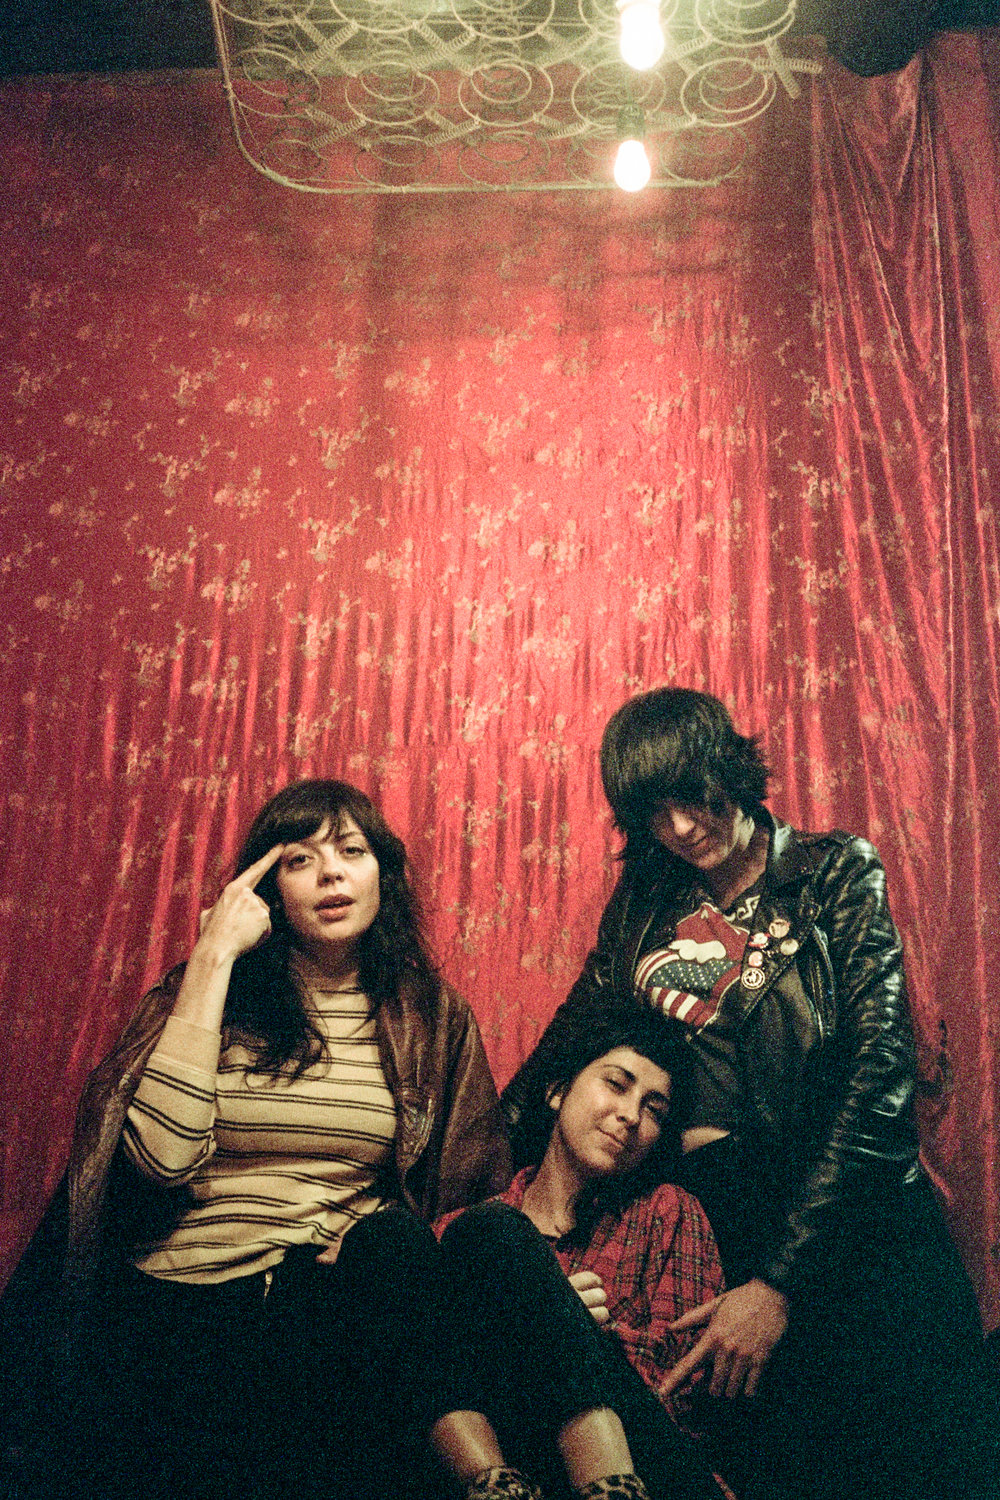 The Coathangers for    What Youth